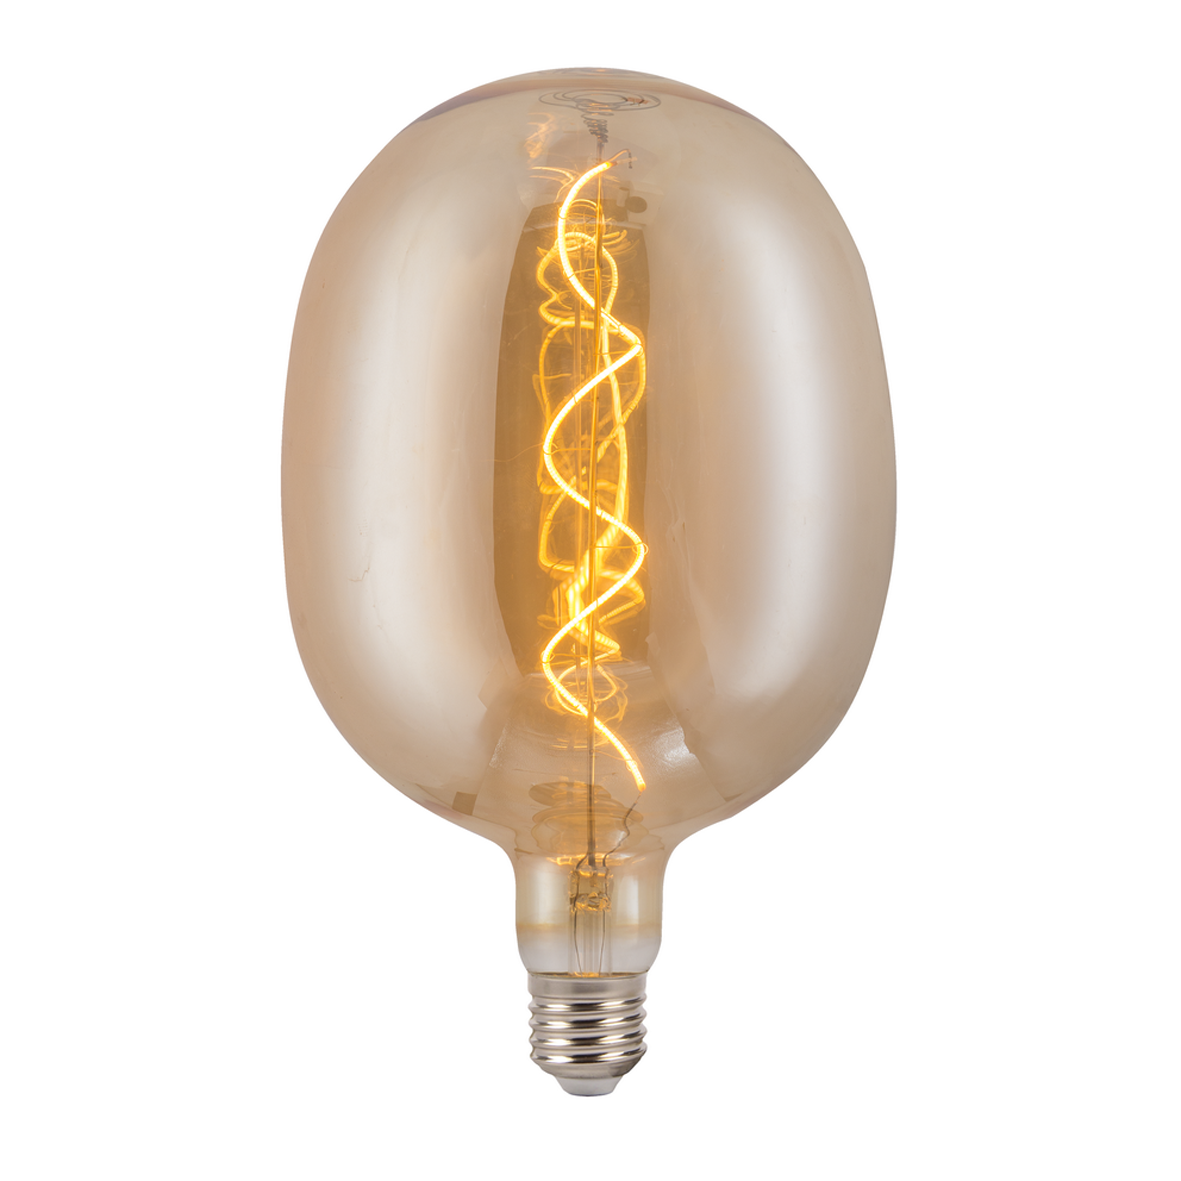 LED lamp 8W big E27 design Balloon YD80A with filament L100-8W